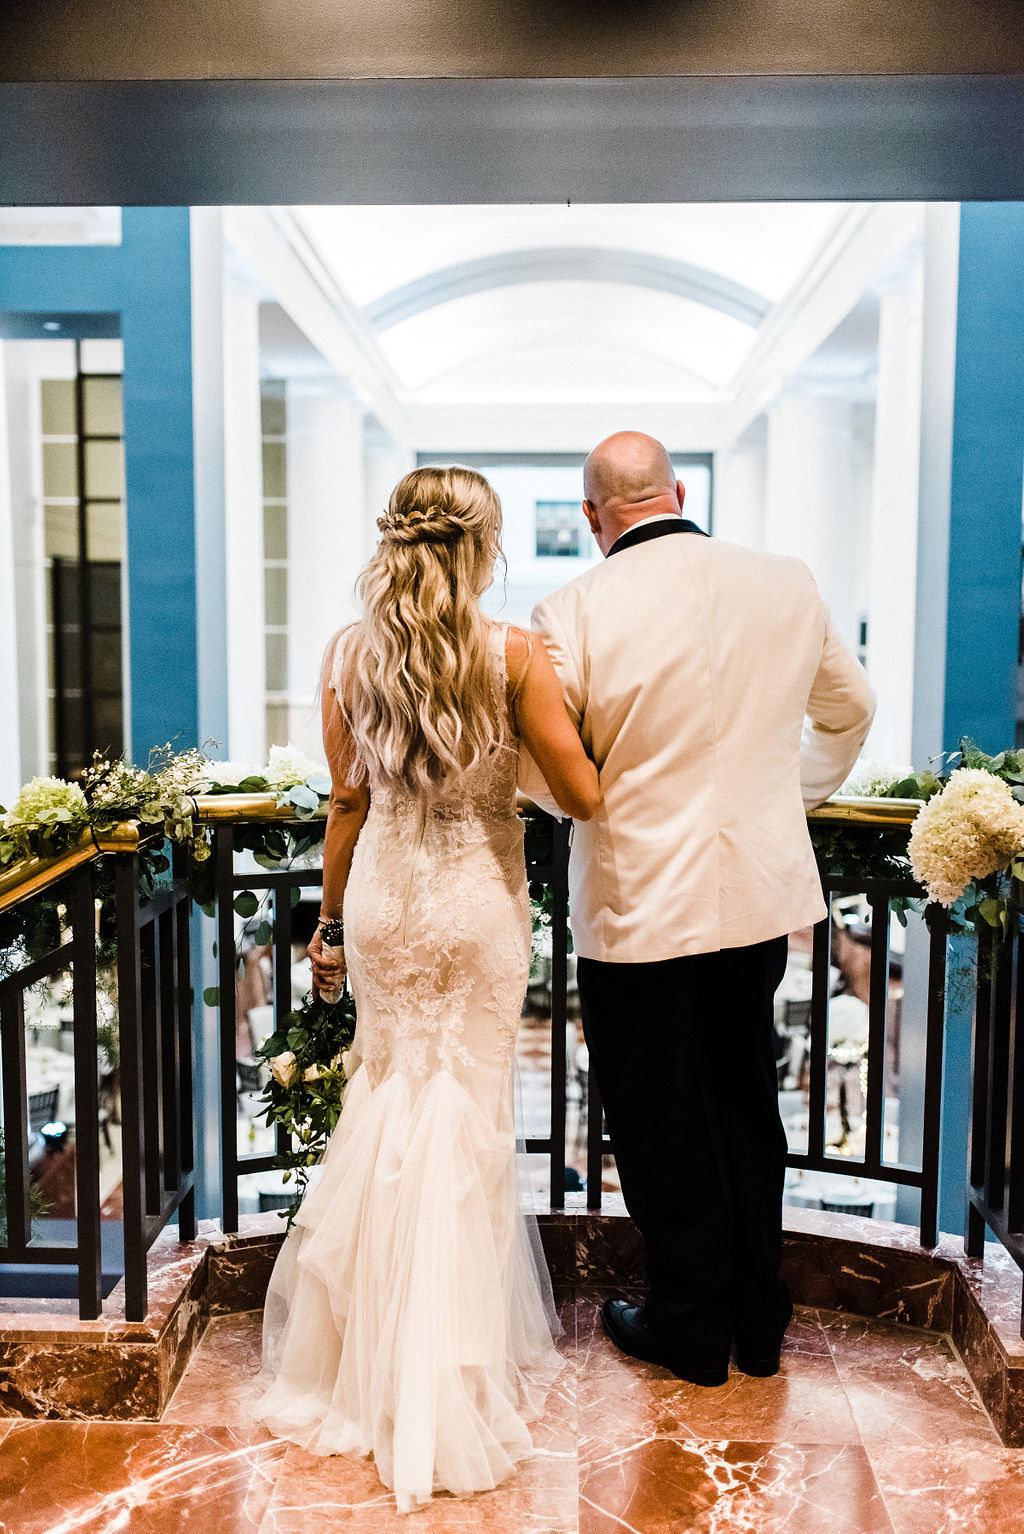 Melanie & Tyler - The Goodwin Hotel looking into their dinning room before is becomes filled with their guests - Pearl Weddings & Events